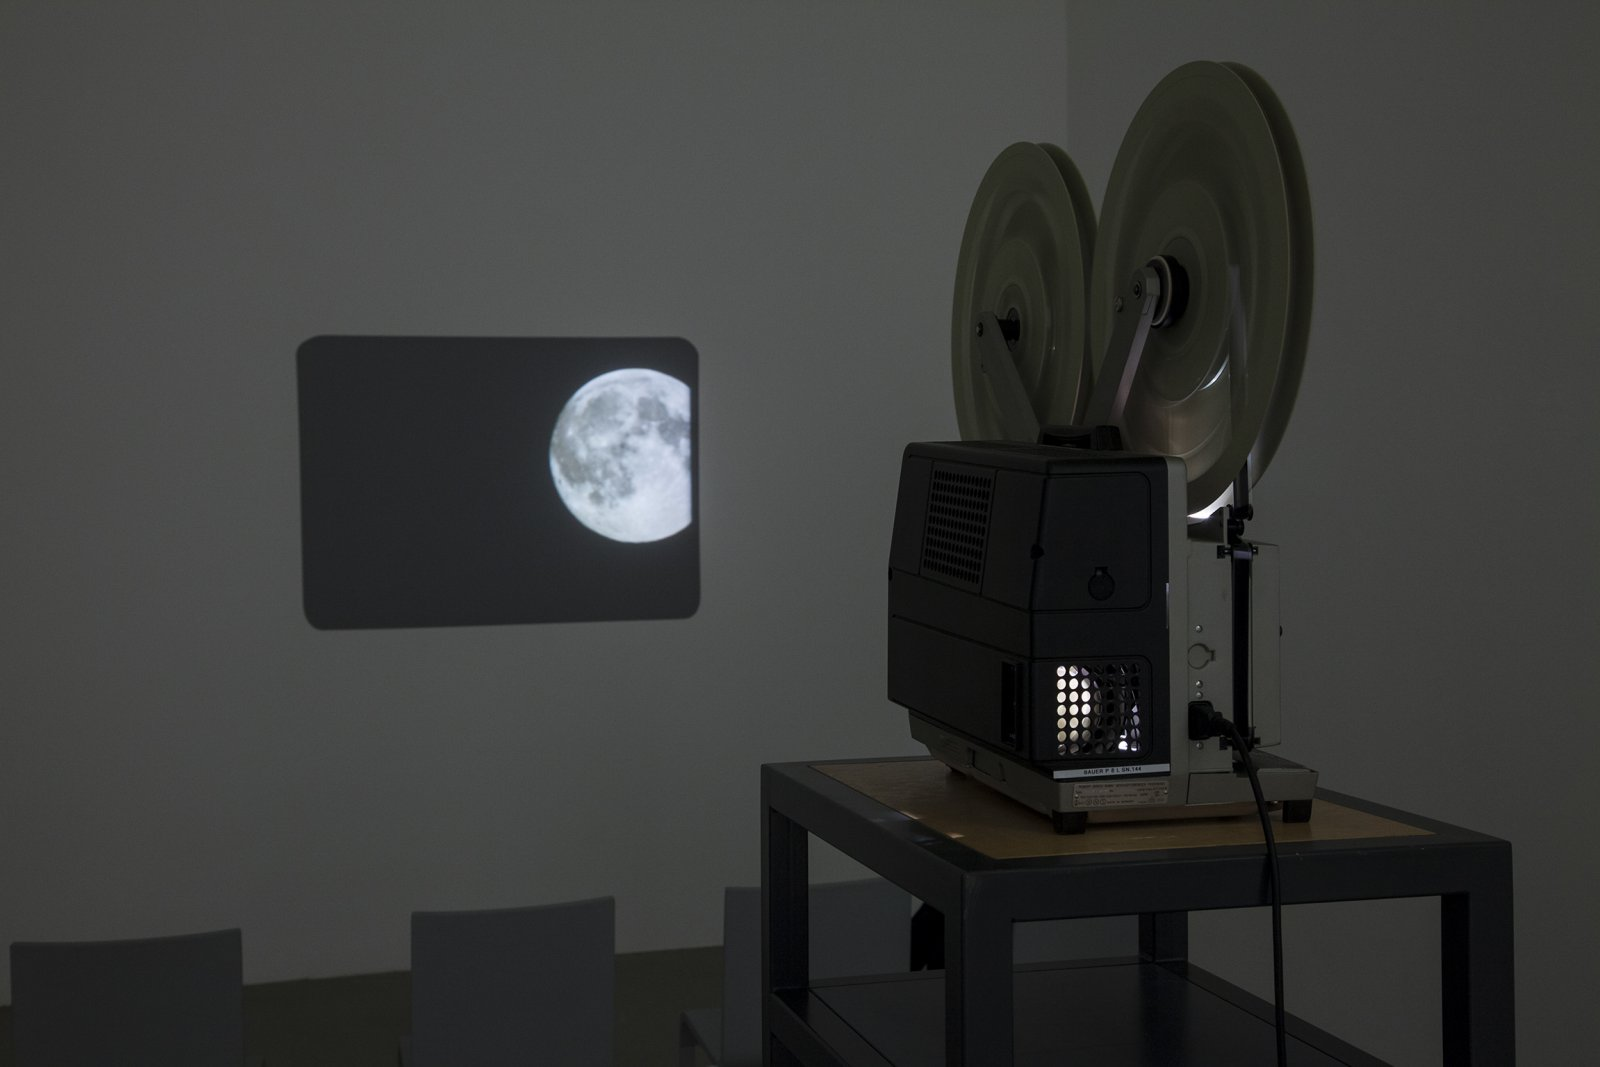 Judy Radul, THIS IS TELEVISION, 2013, 16mm film, colour, silent, 10 minutes, 8 seconds. Installation view, This is Television, Daadgalerie, Berlin, Germany, 2013 by Judy Radul